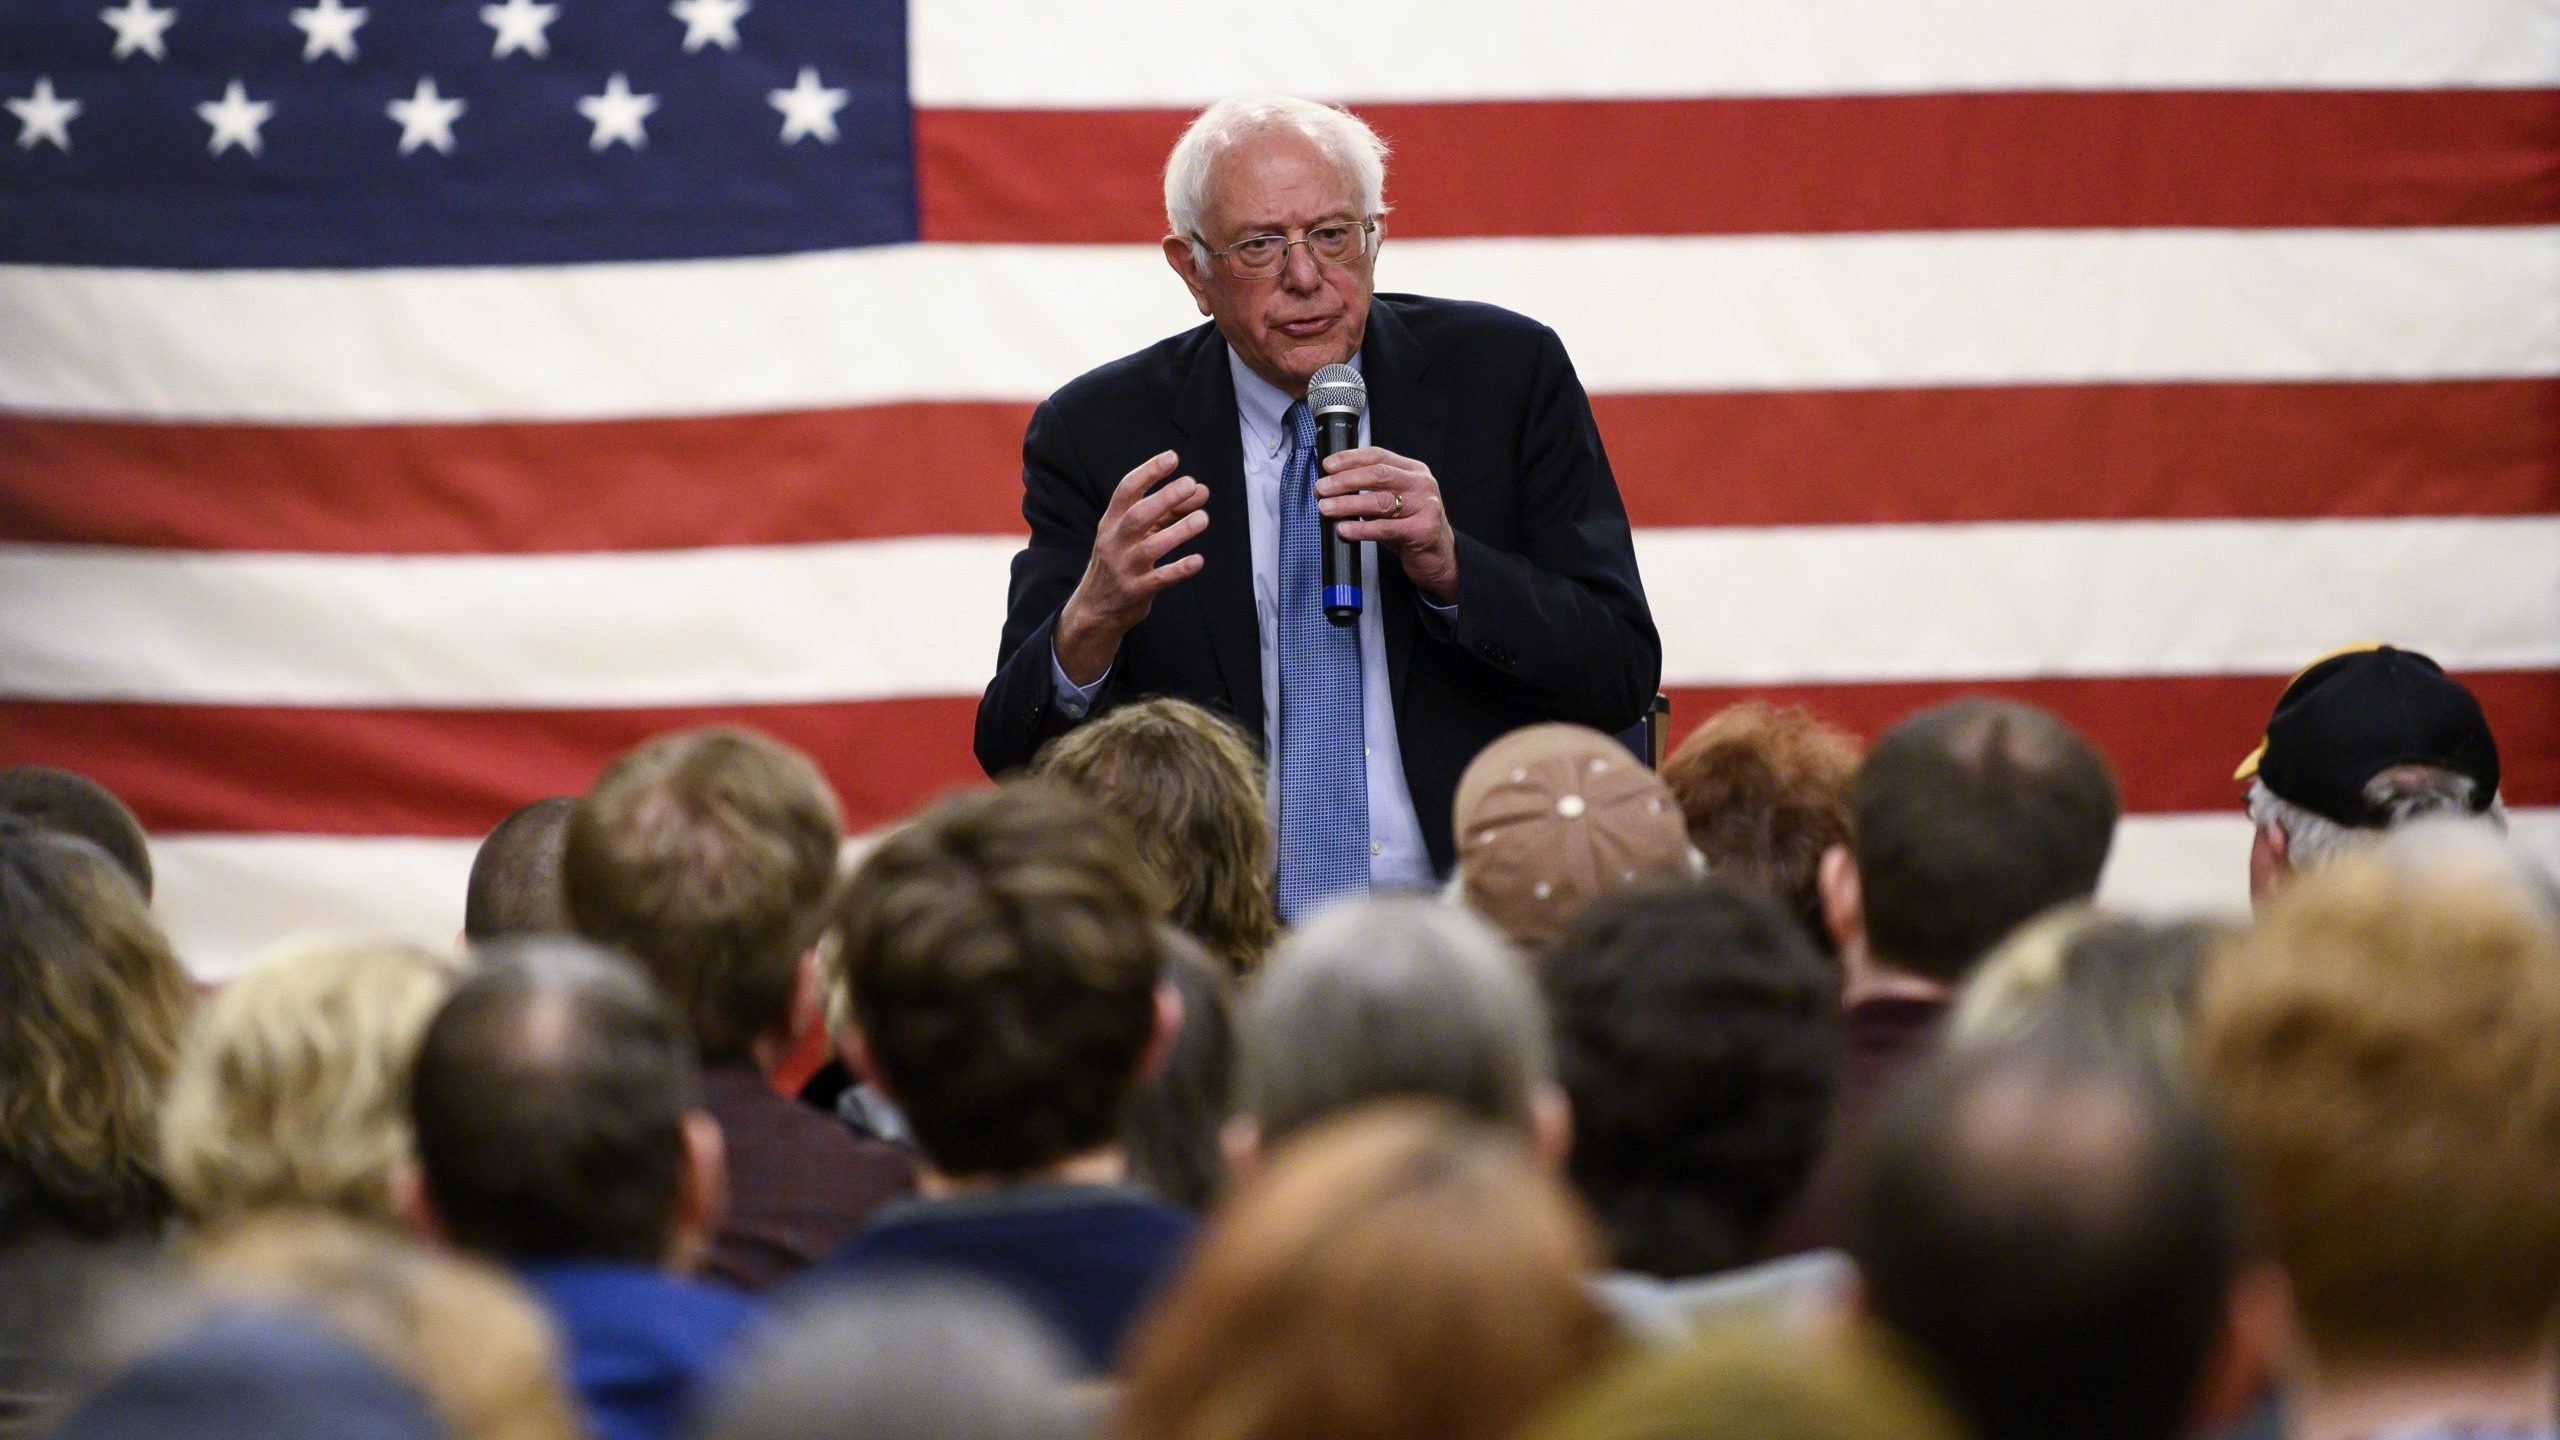 Democratic presidential candidate Sen. Bernie Sanders speaks at a town hall in Anamosa, Iowa, on Jan. 3, 2020. (Credit: Stephen Maturen / Getty Images)